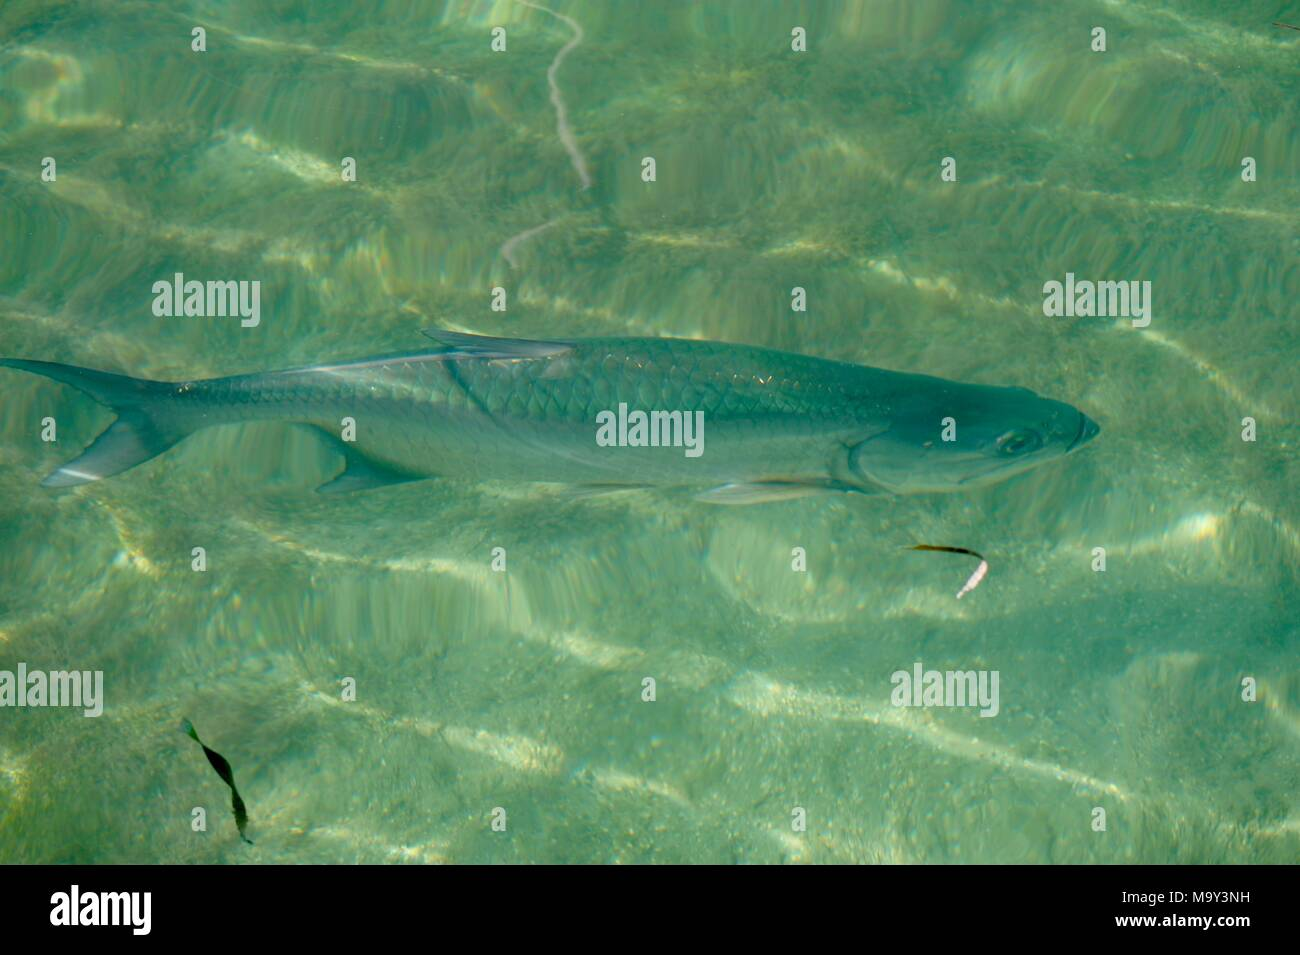 Fish swimming in shallow waters on a sand bar near Key West, Florida, USA - Stock Image